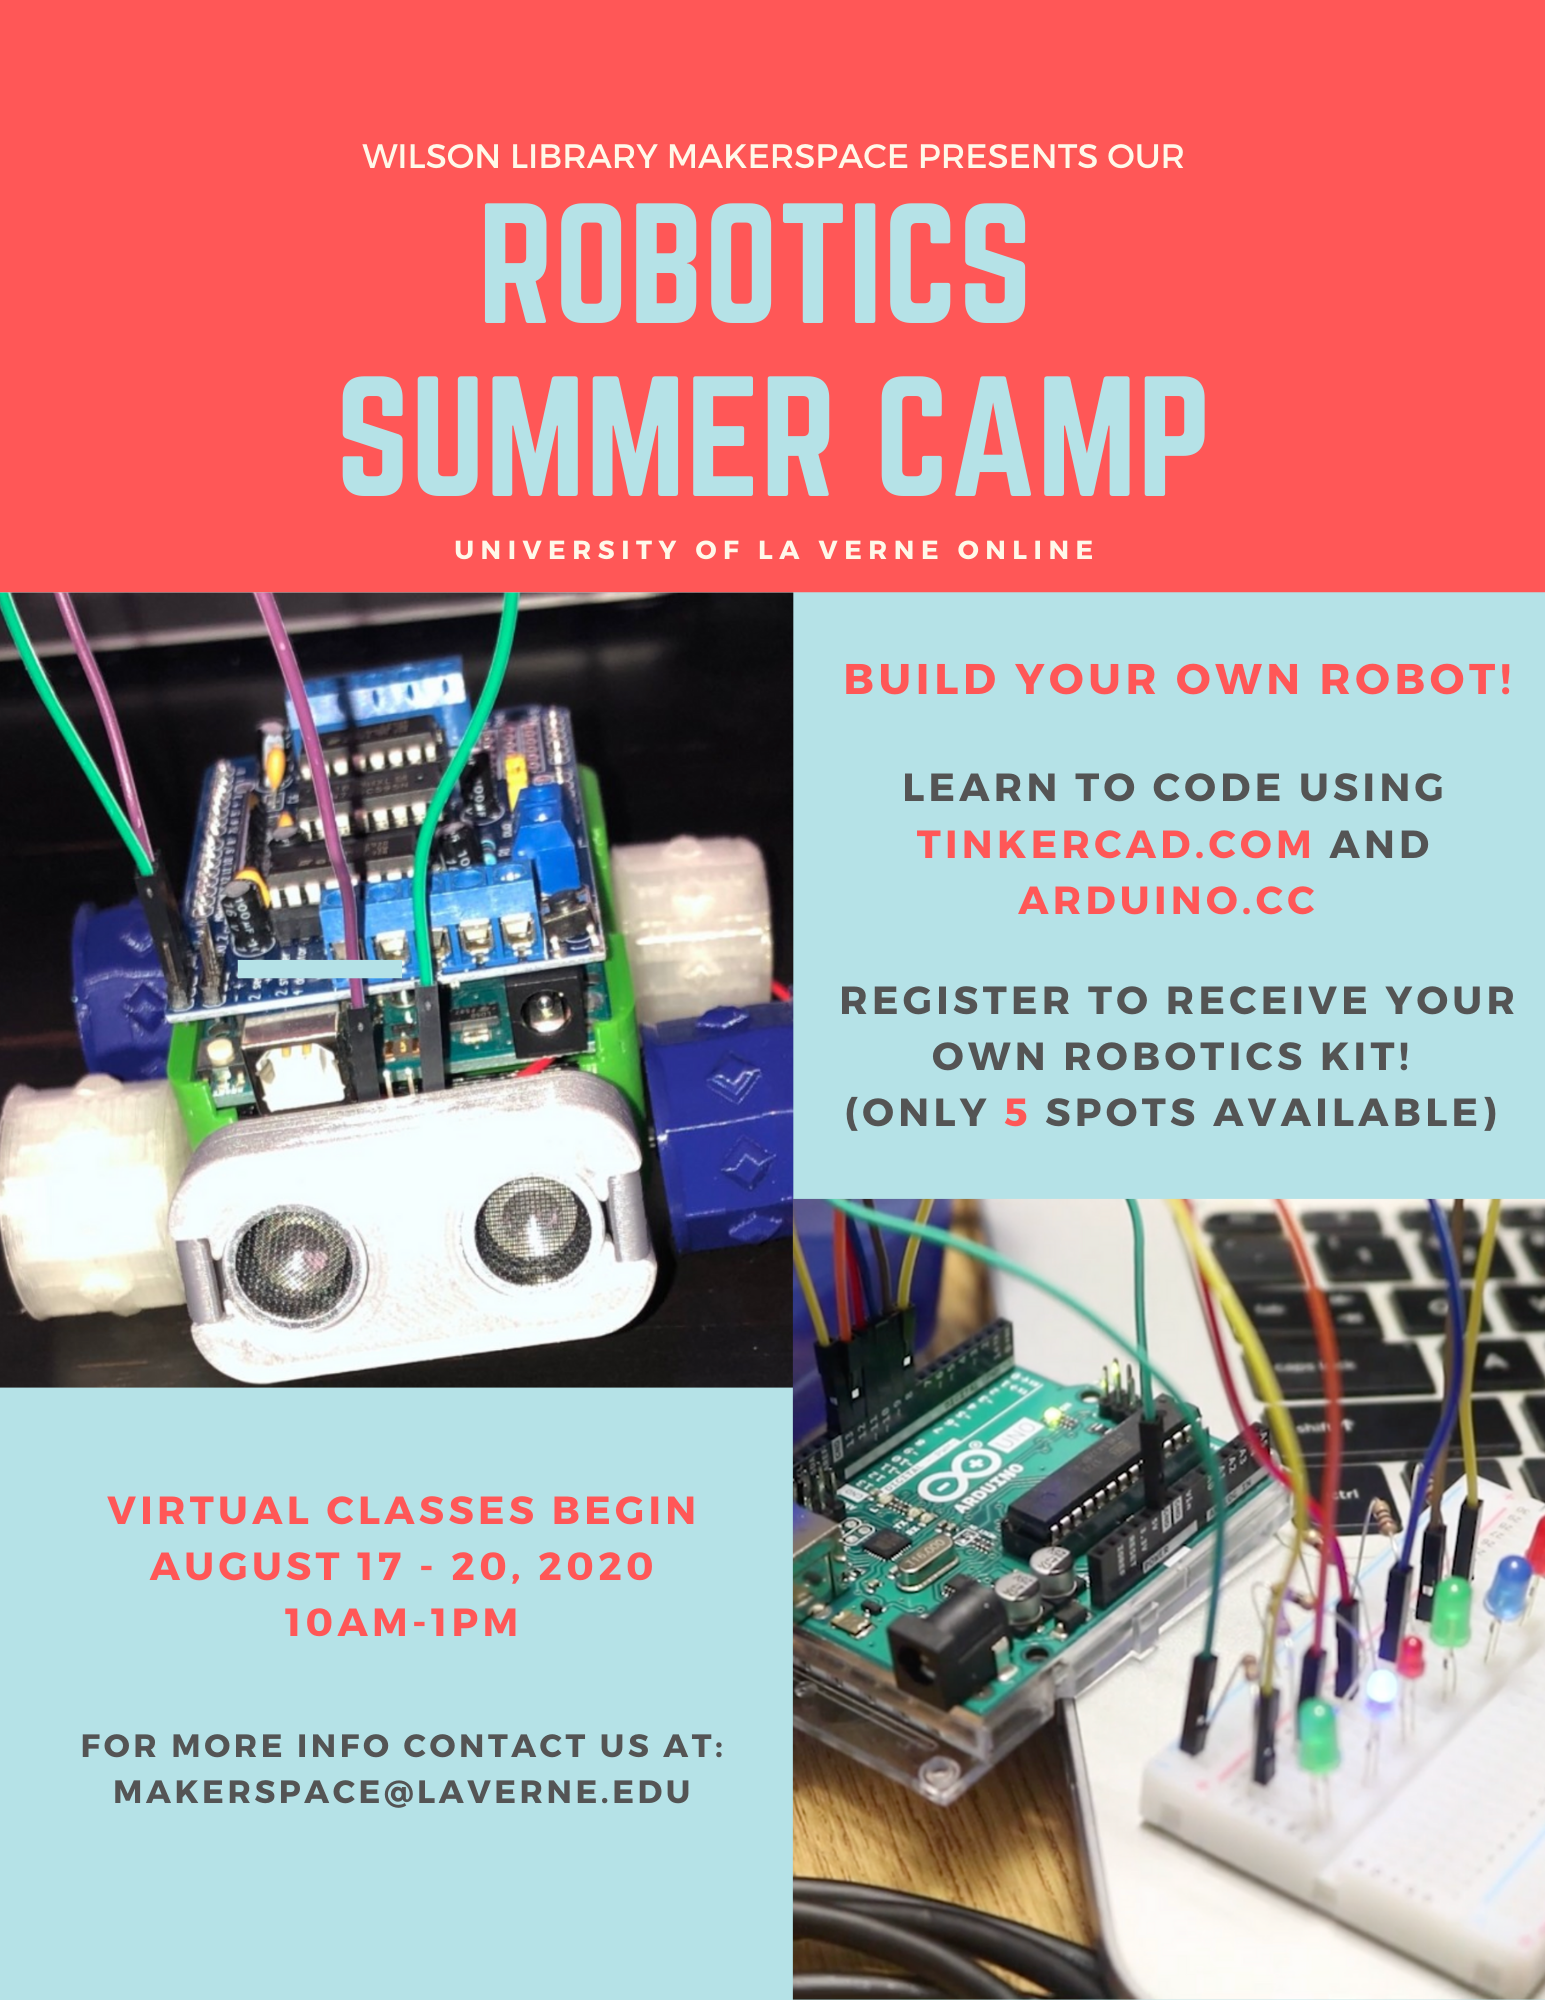 The Wilson Library's Makerspace Robotics Camp